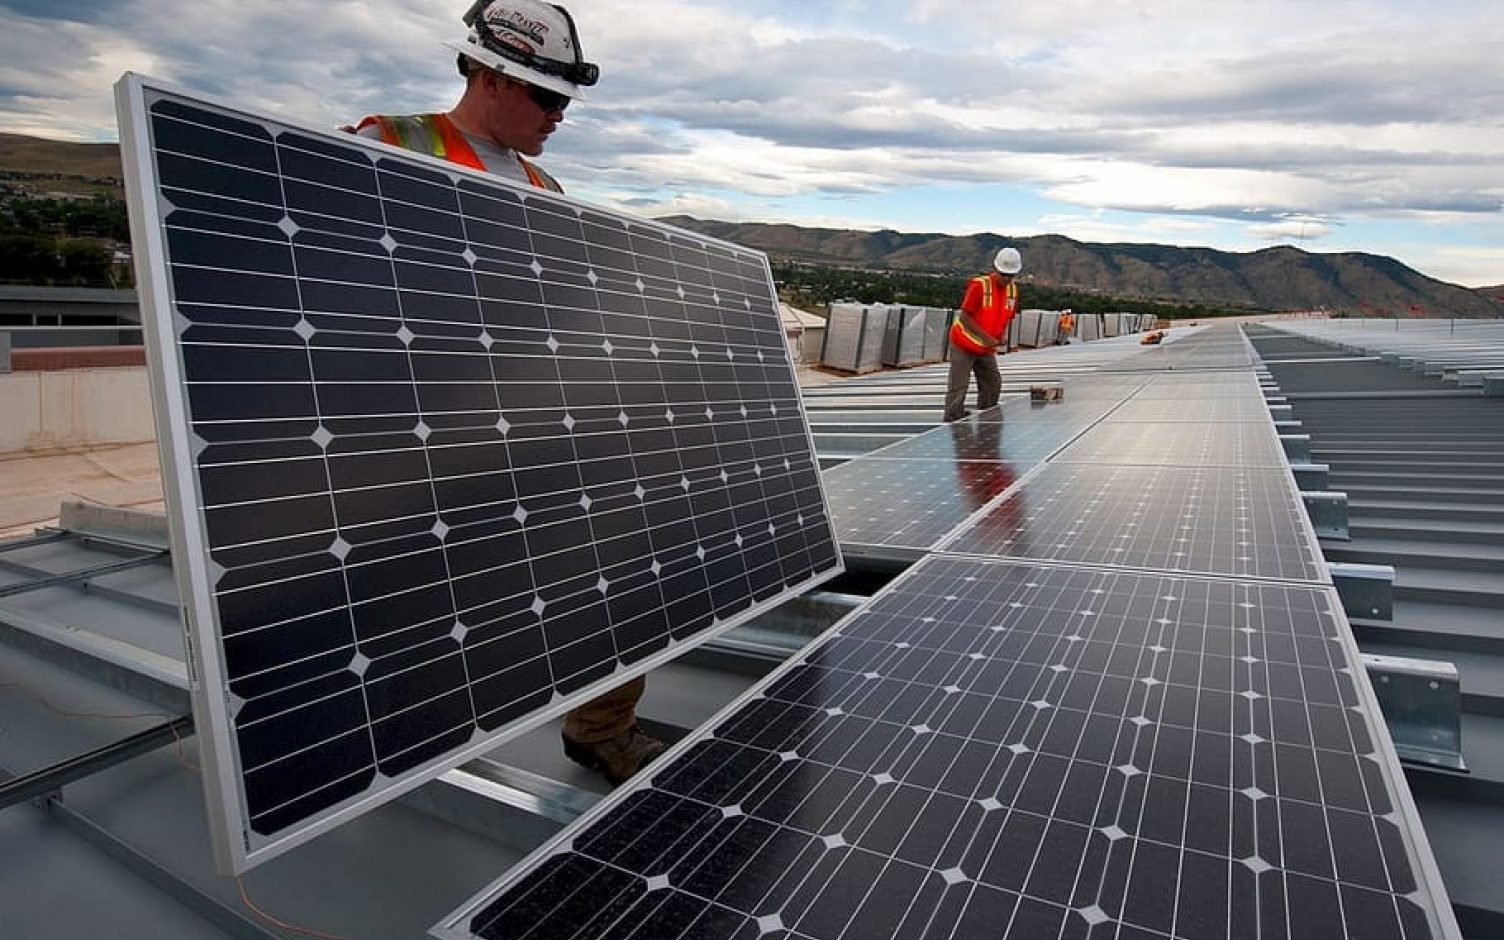 Pursuing energy efficiency could help create jobs, at all ends of the spectrum.